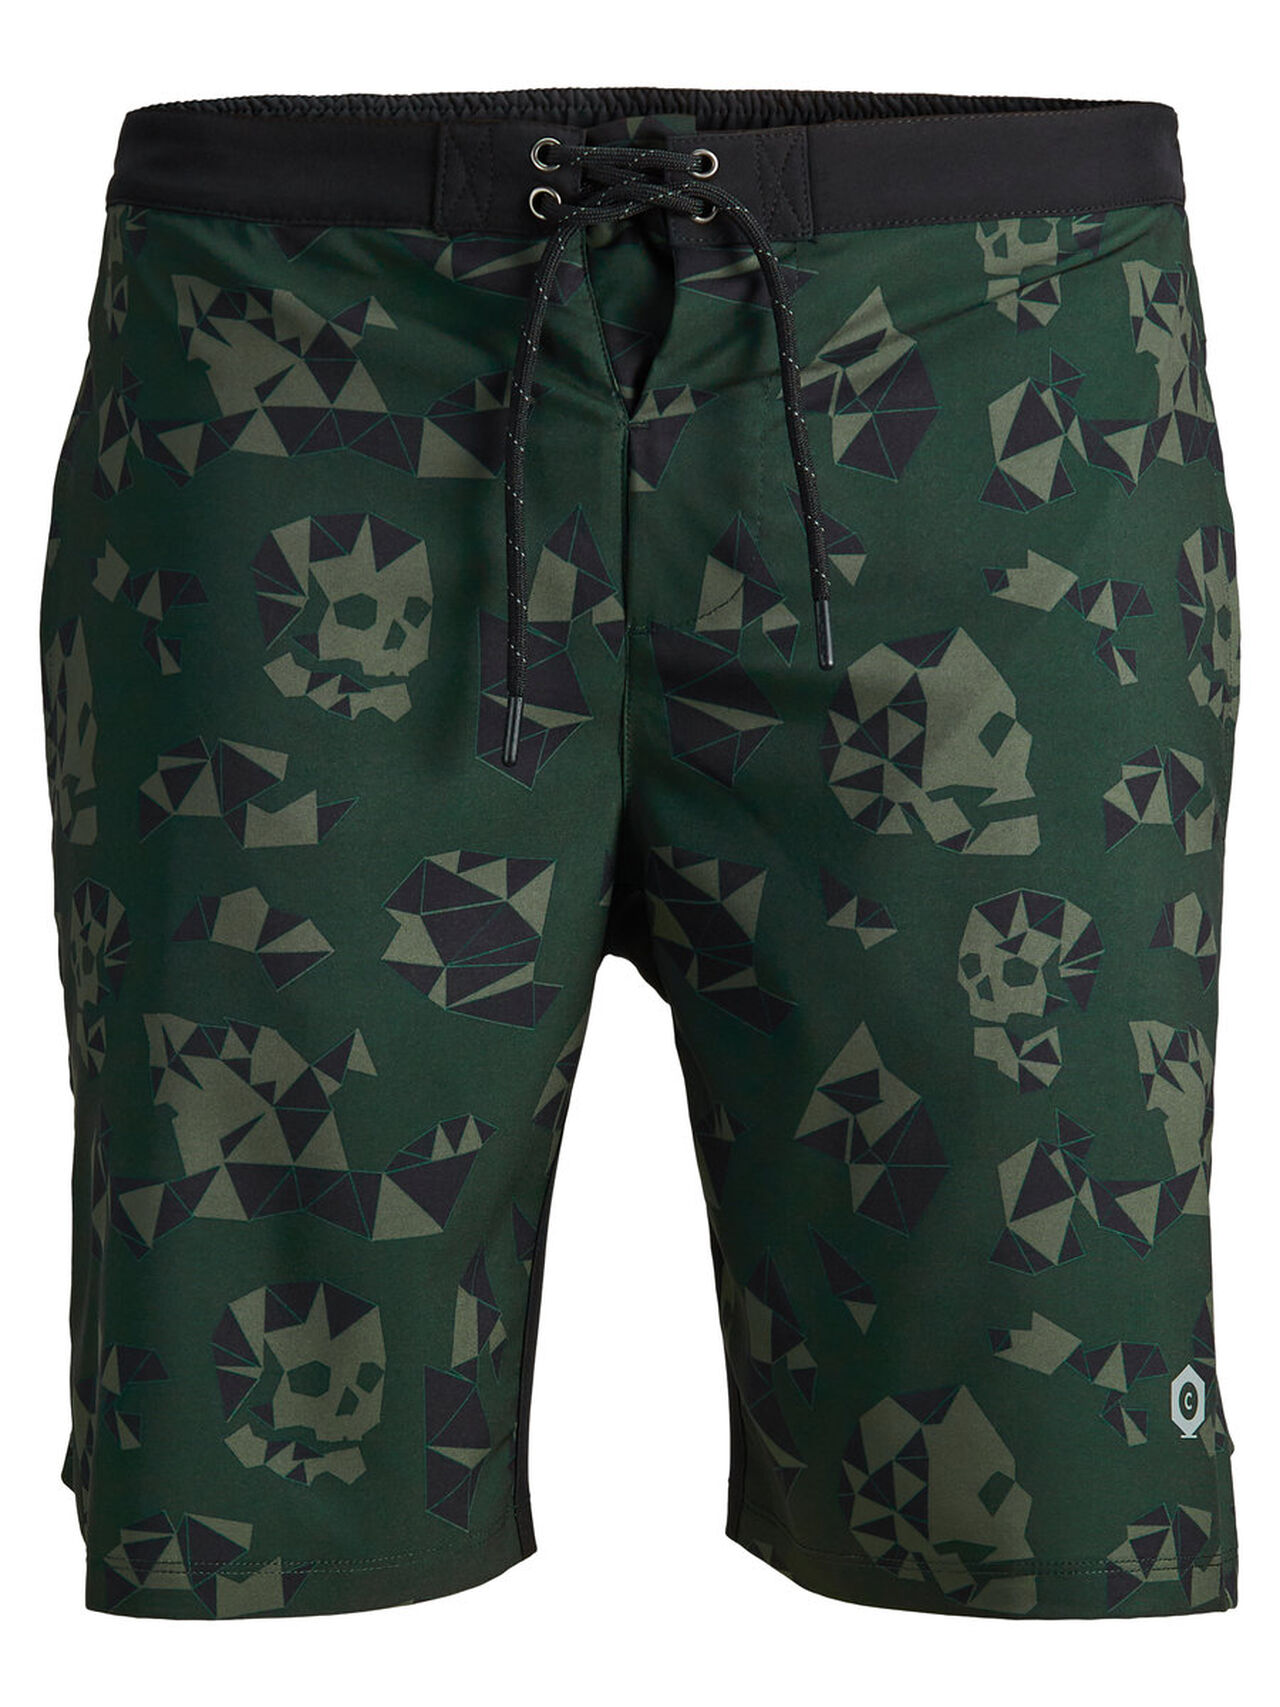 JACK & JONES Camo Shorts Men green